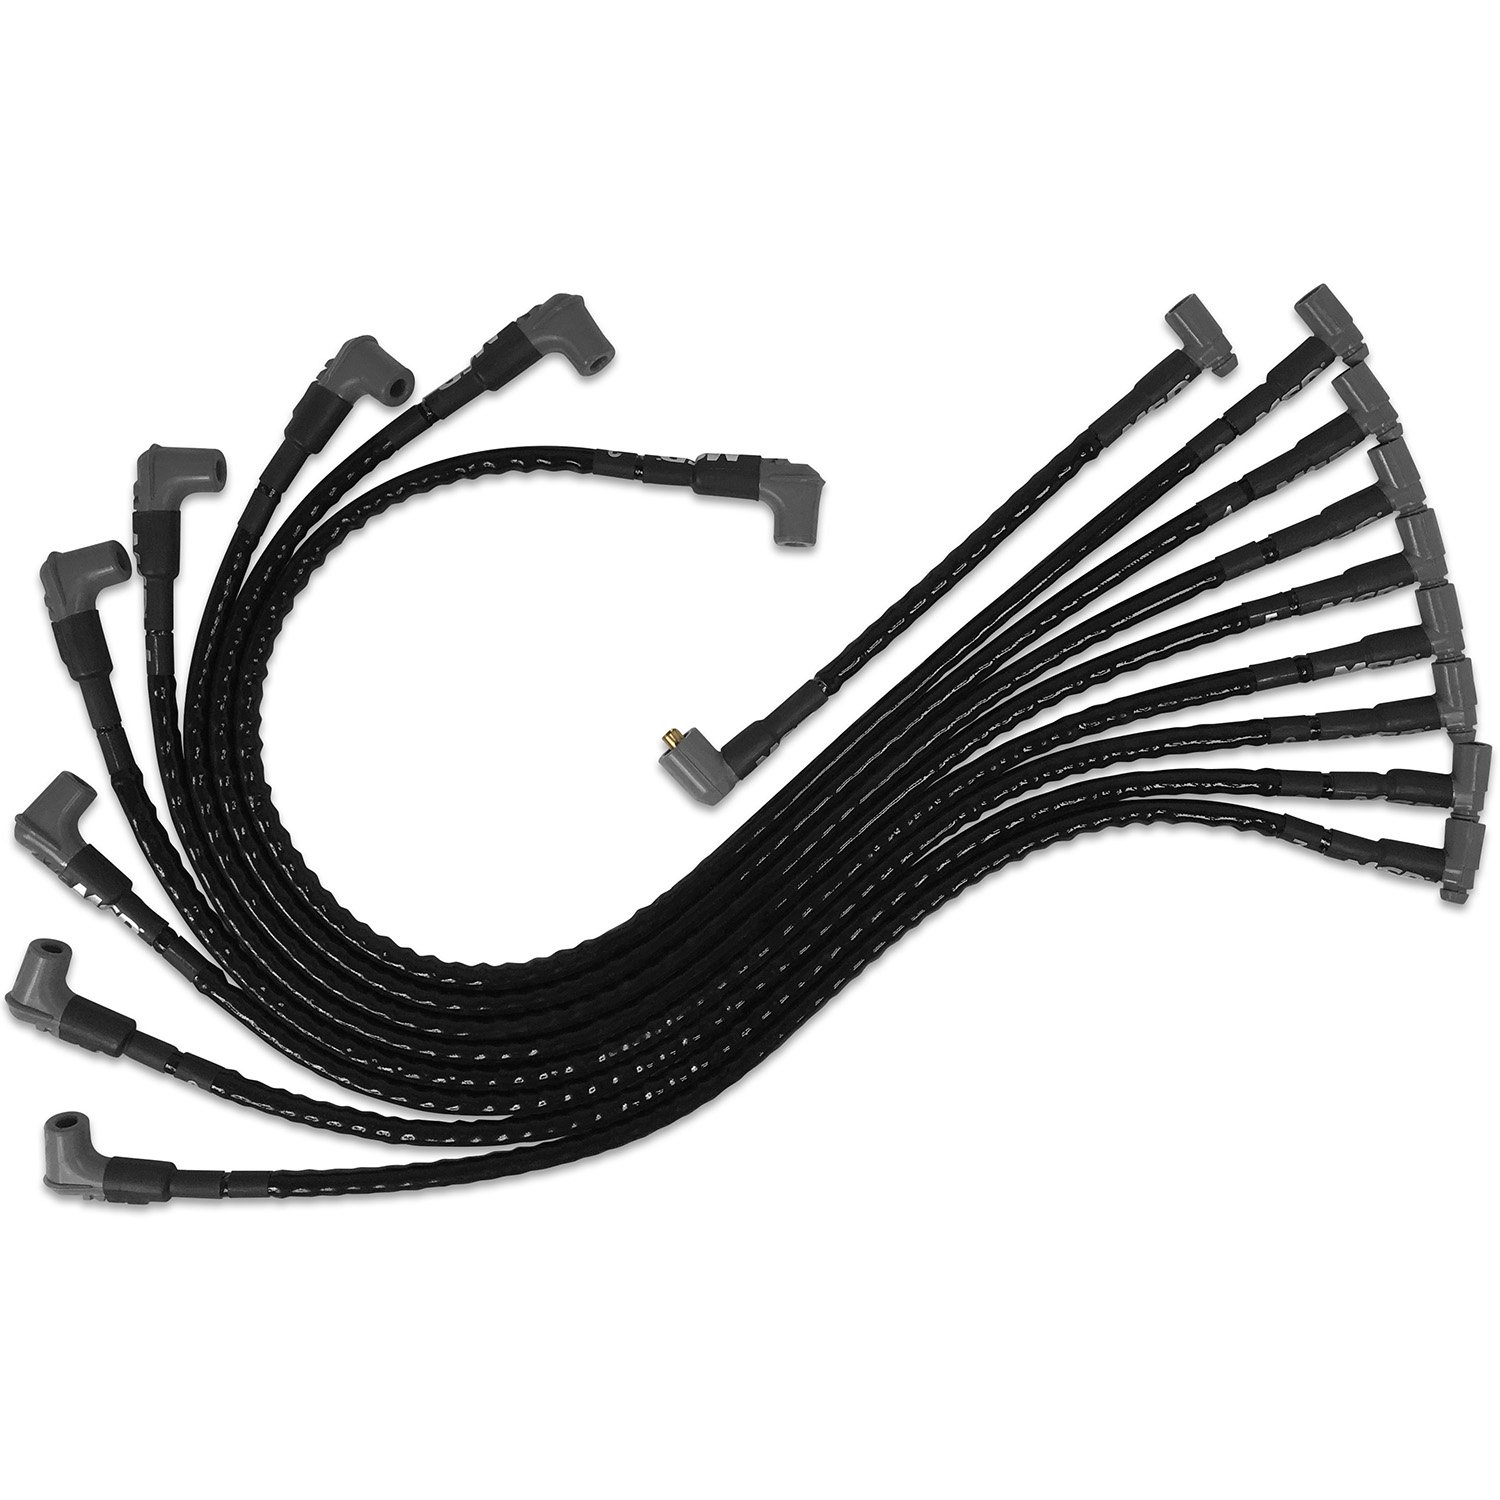 Msd Sleeved Spark Plug Wires For Sbc Under Exhaust